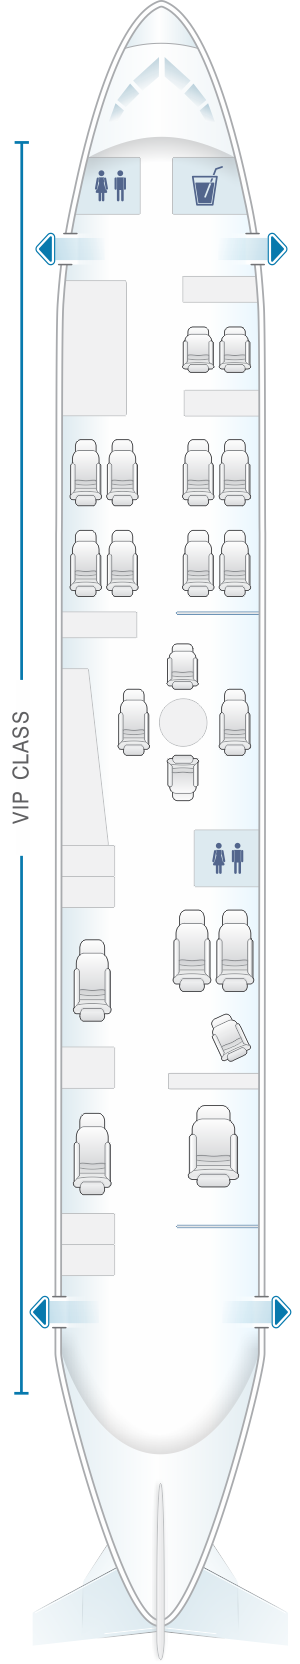 Seat map for White Airways Airbus A319 CS TQJ night configuration